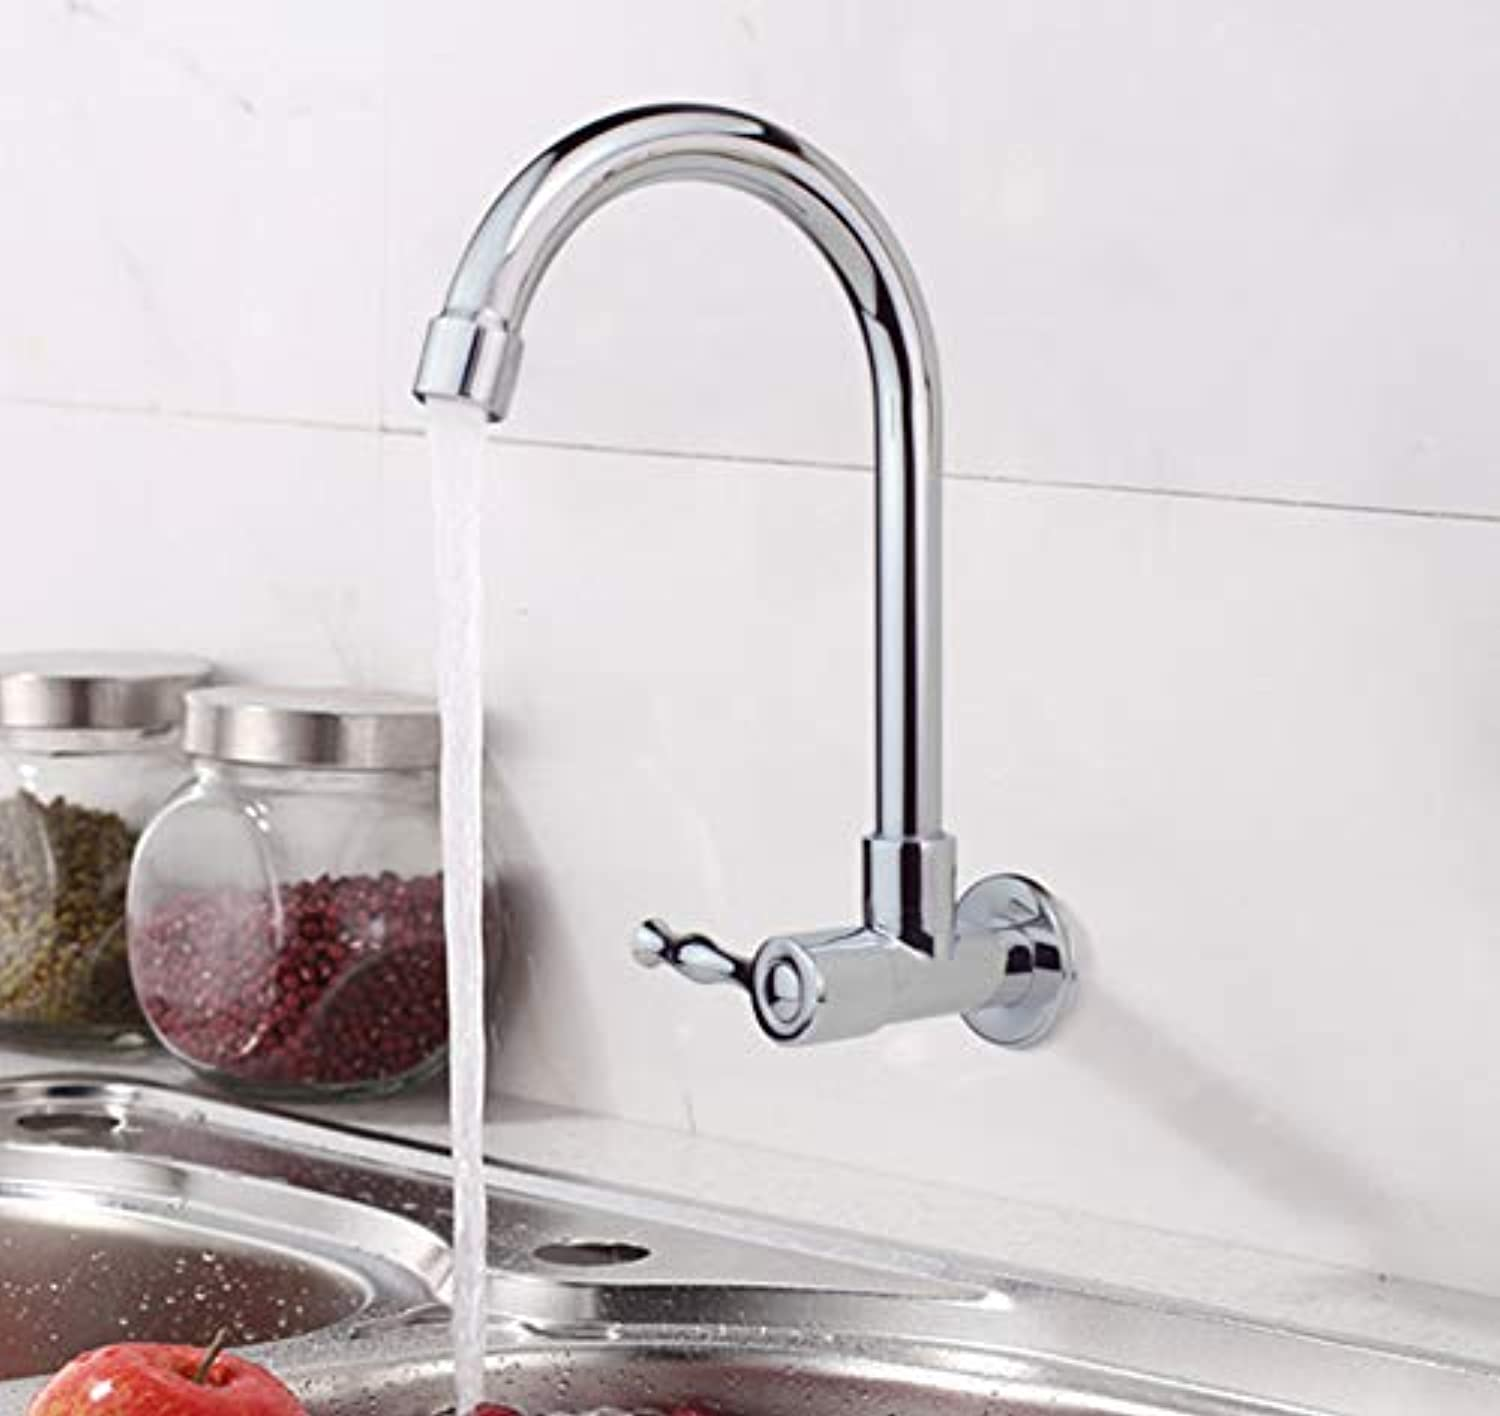 redating Kitchen Single Cold Faucet into The Wall Faucet Wall Water Washing Sink Sink Faucet Copper Faucet Valve